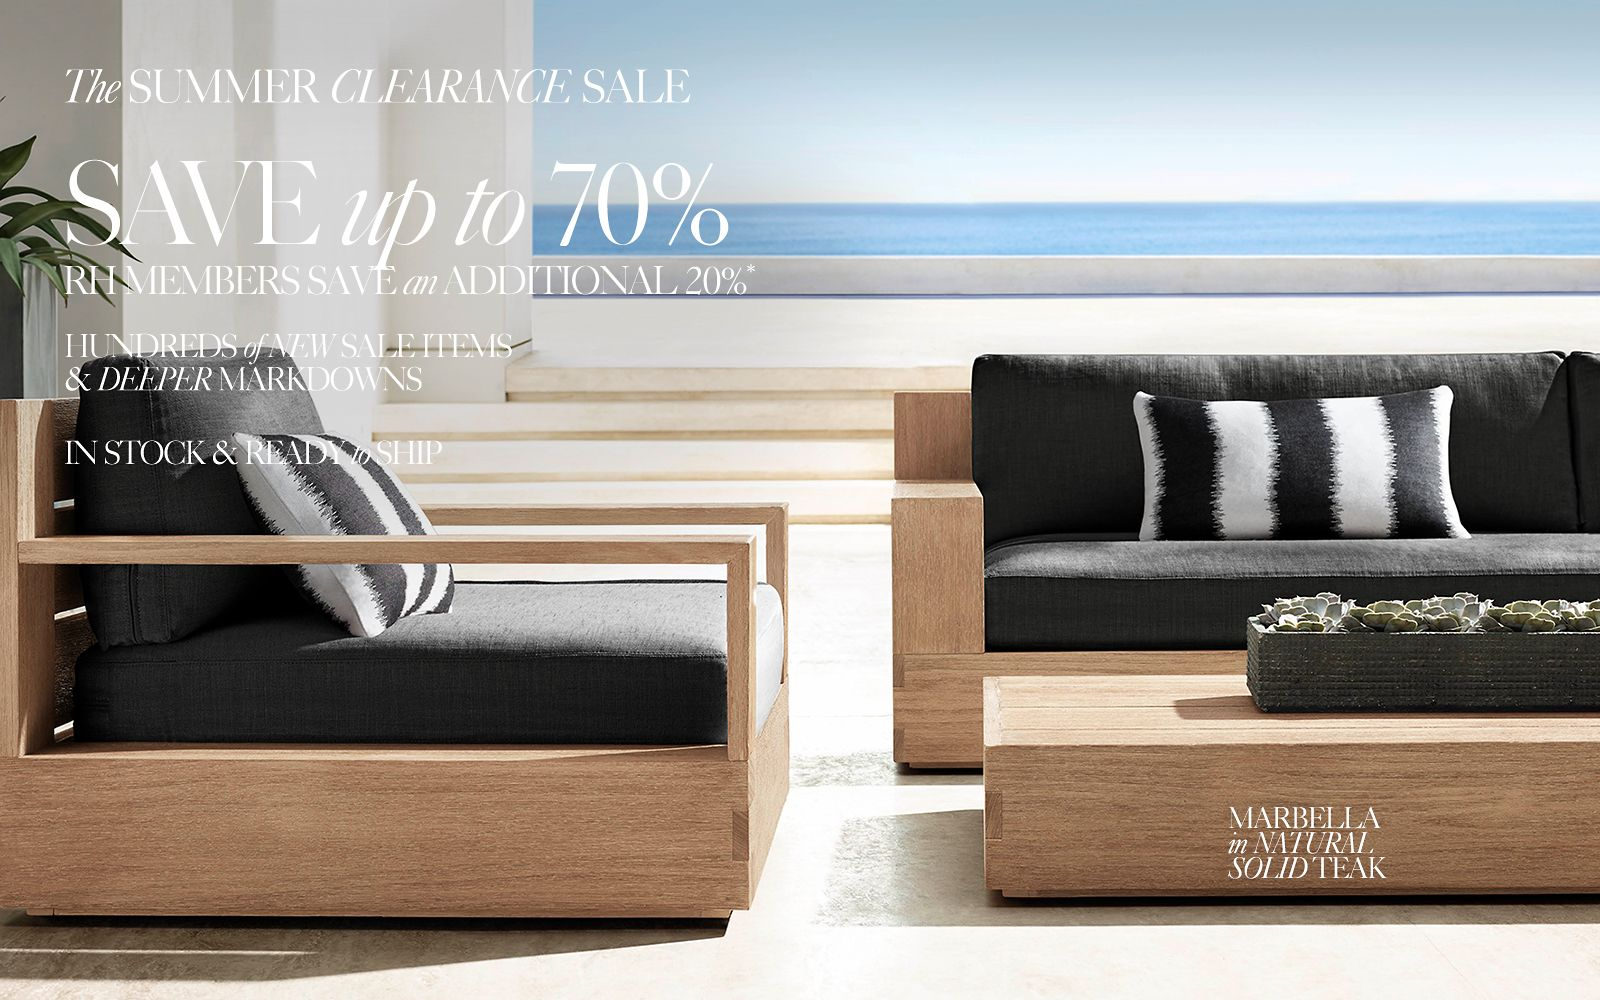 Summer Savings. Save up to 60% on hundreds of items. Shop the Marbella Outdoor Collection.